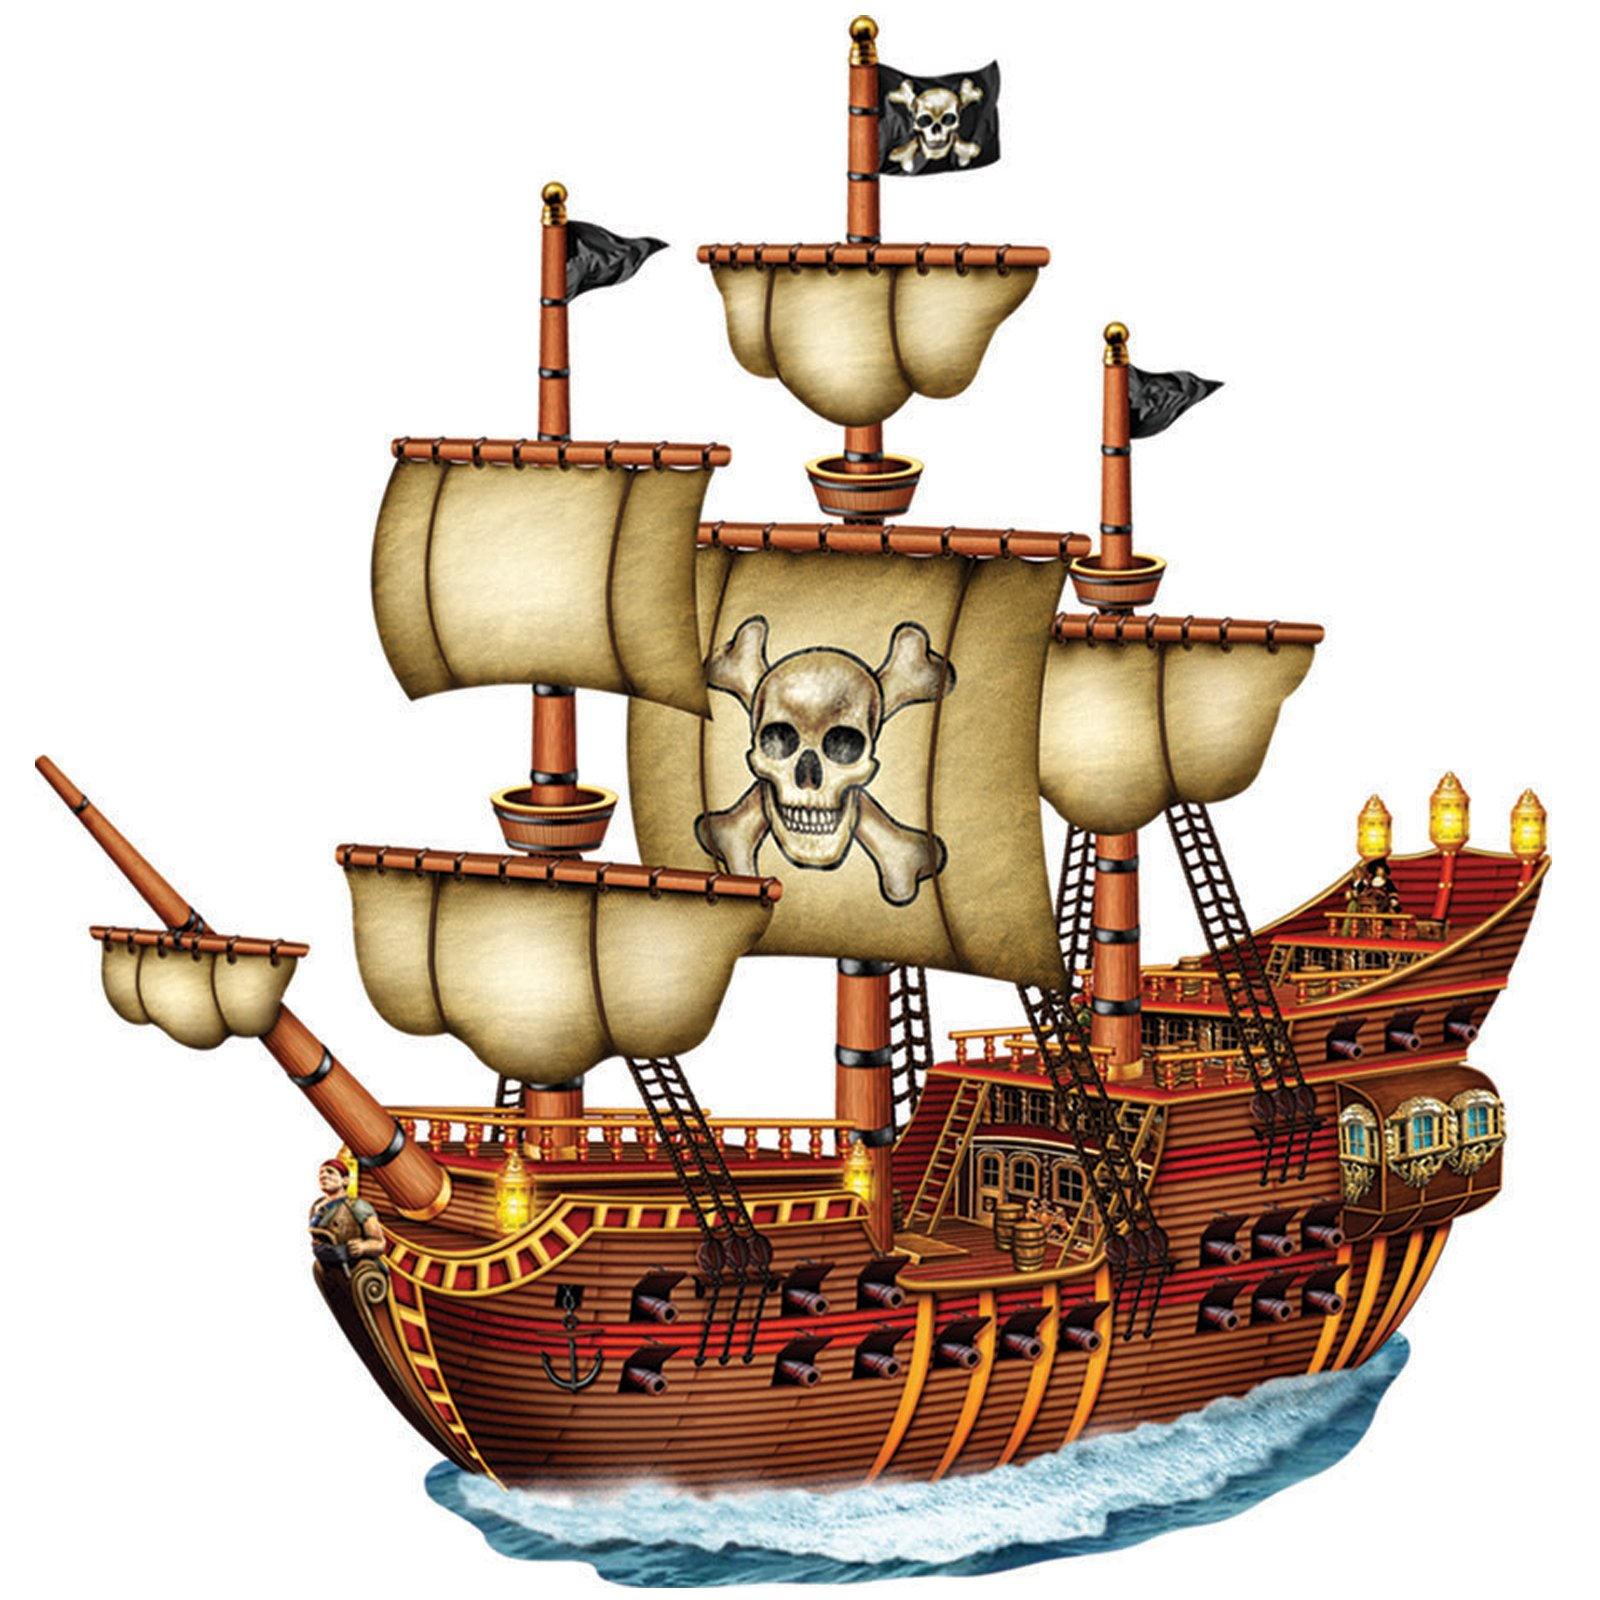 Cartoon Pirate Ship Backgrounds 11 Ships